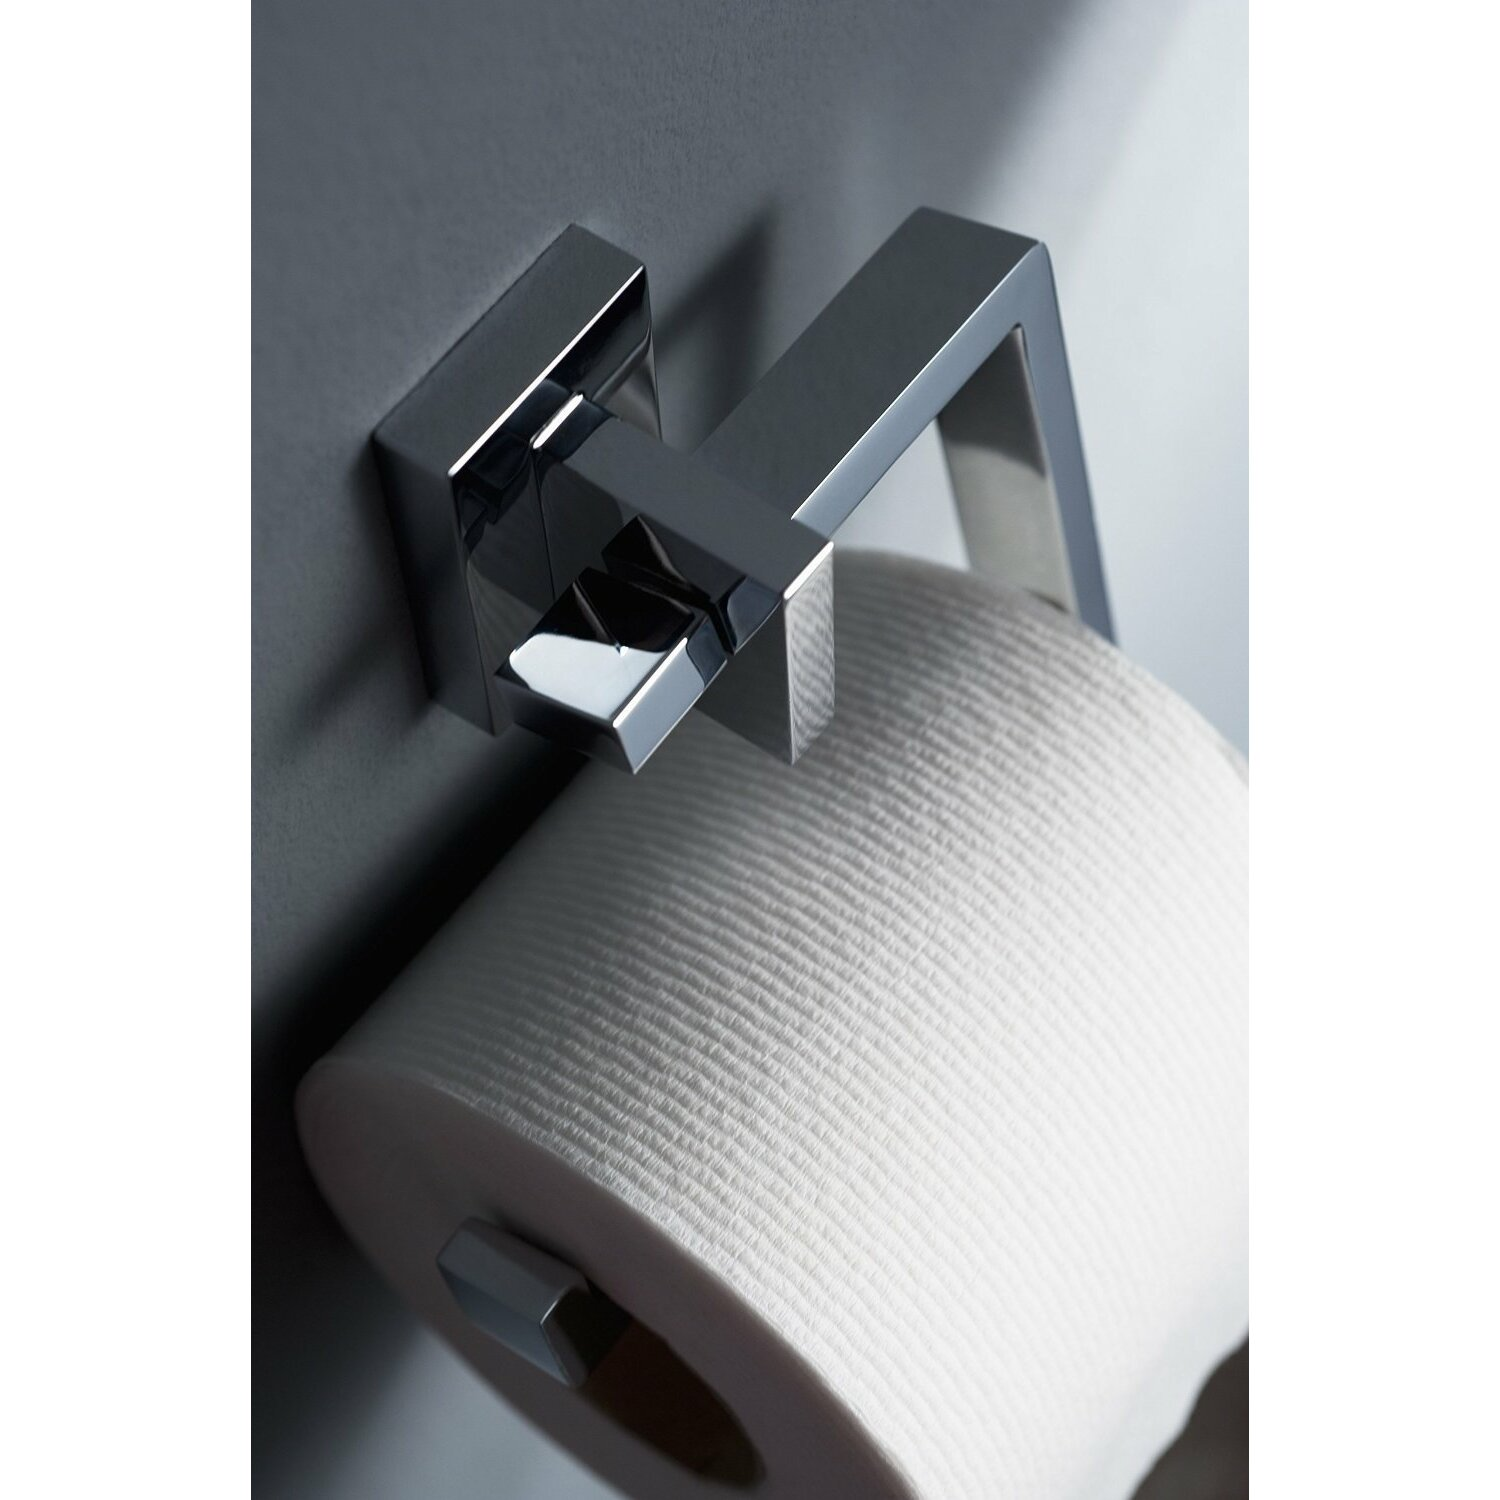 Haceka Edge Wall Mounted Toilet Roll Holder In Chrome Amp Reviews Wayfair Uk